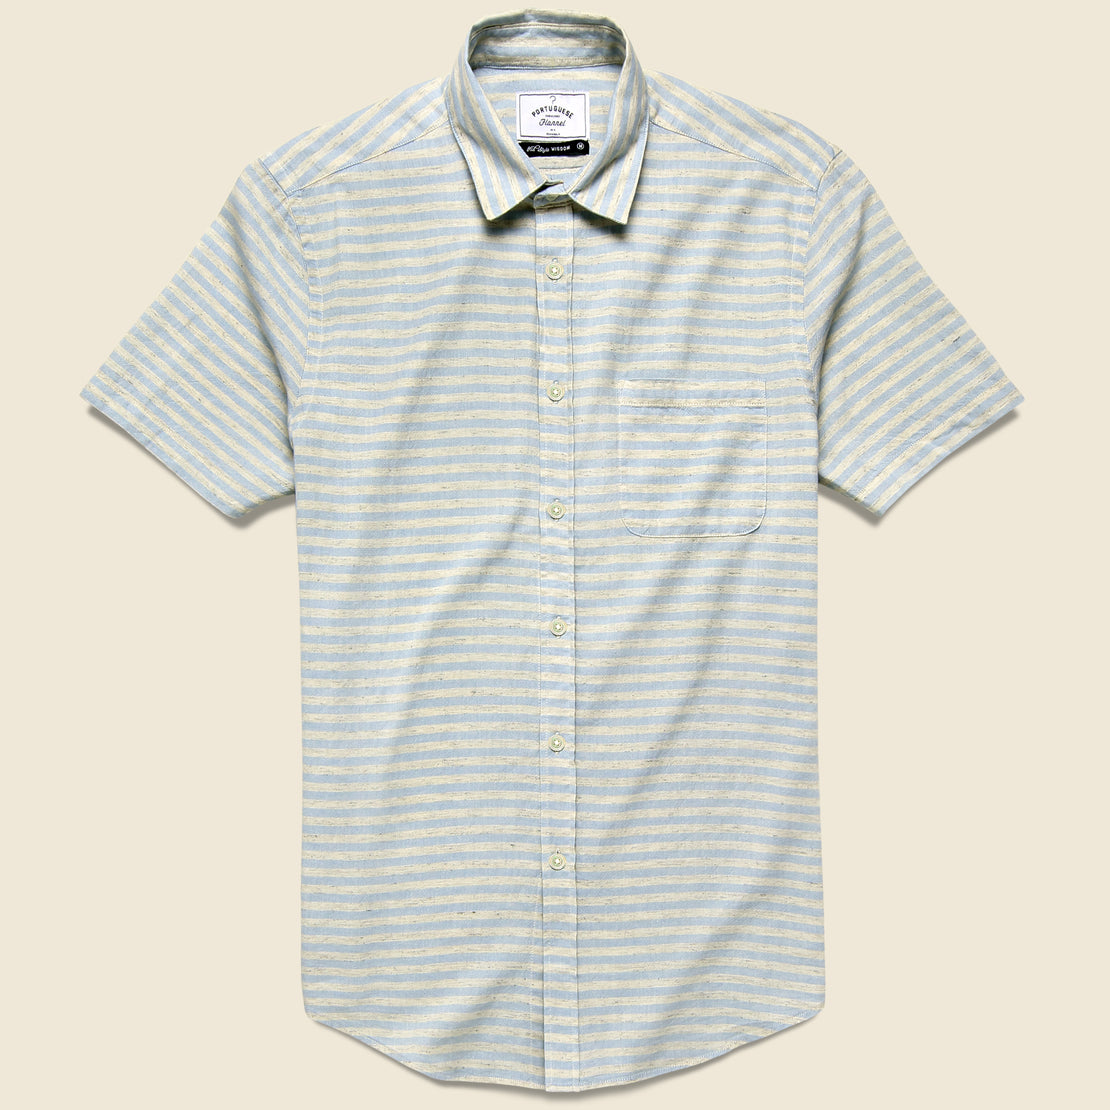 Portuguese Flannel Plage Shirt - Light Blue/Grey